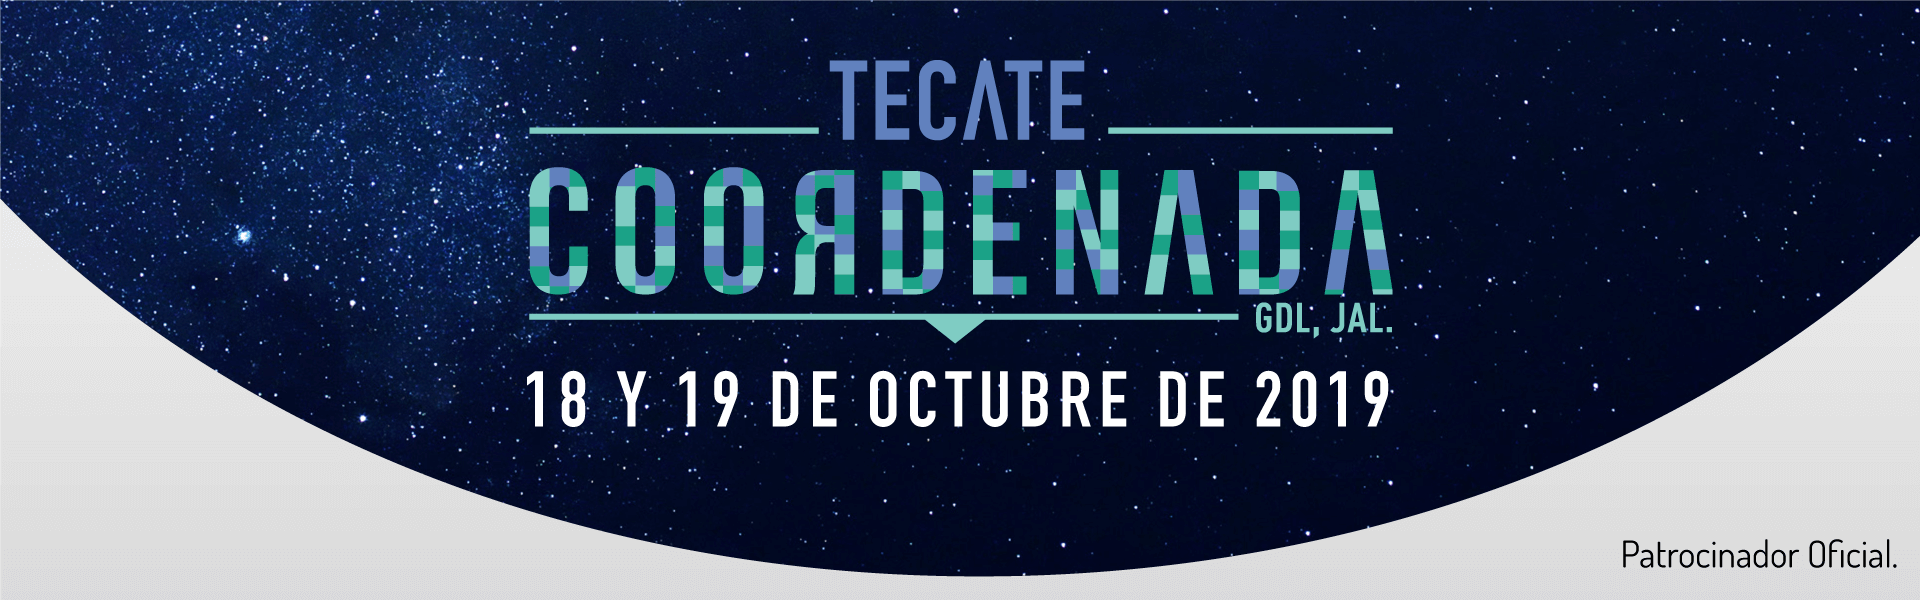 Tecate Pal Norte 2019